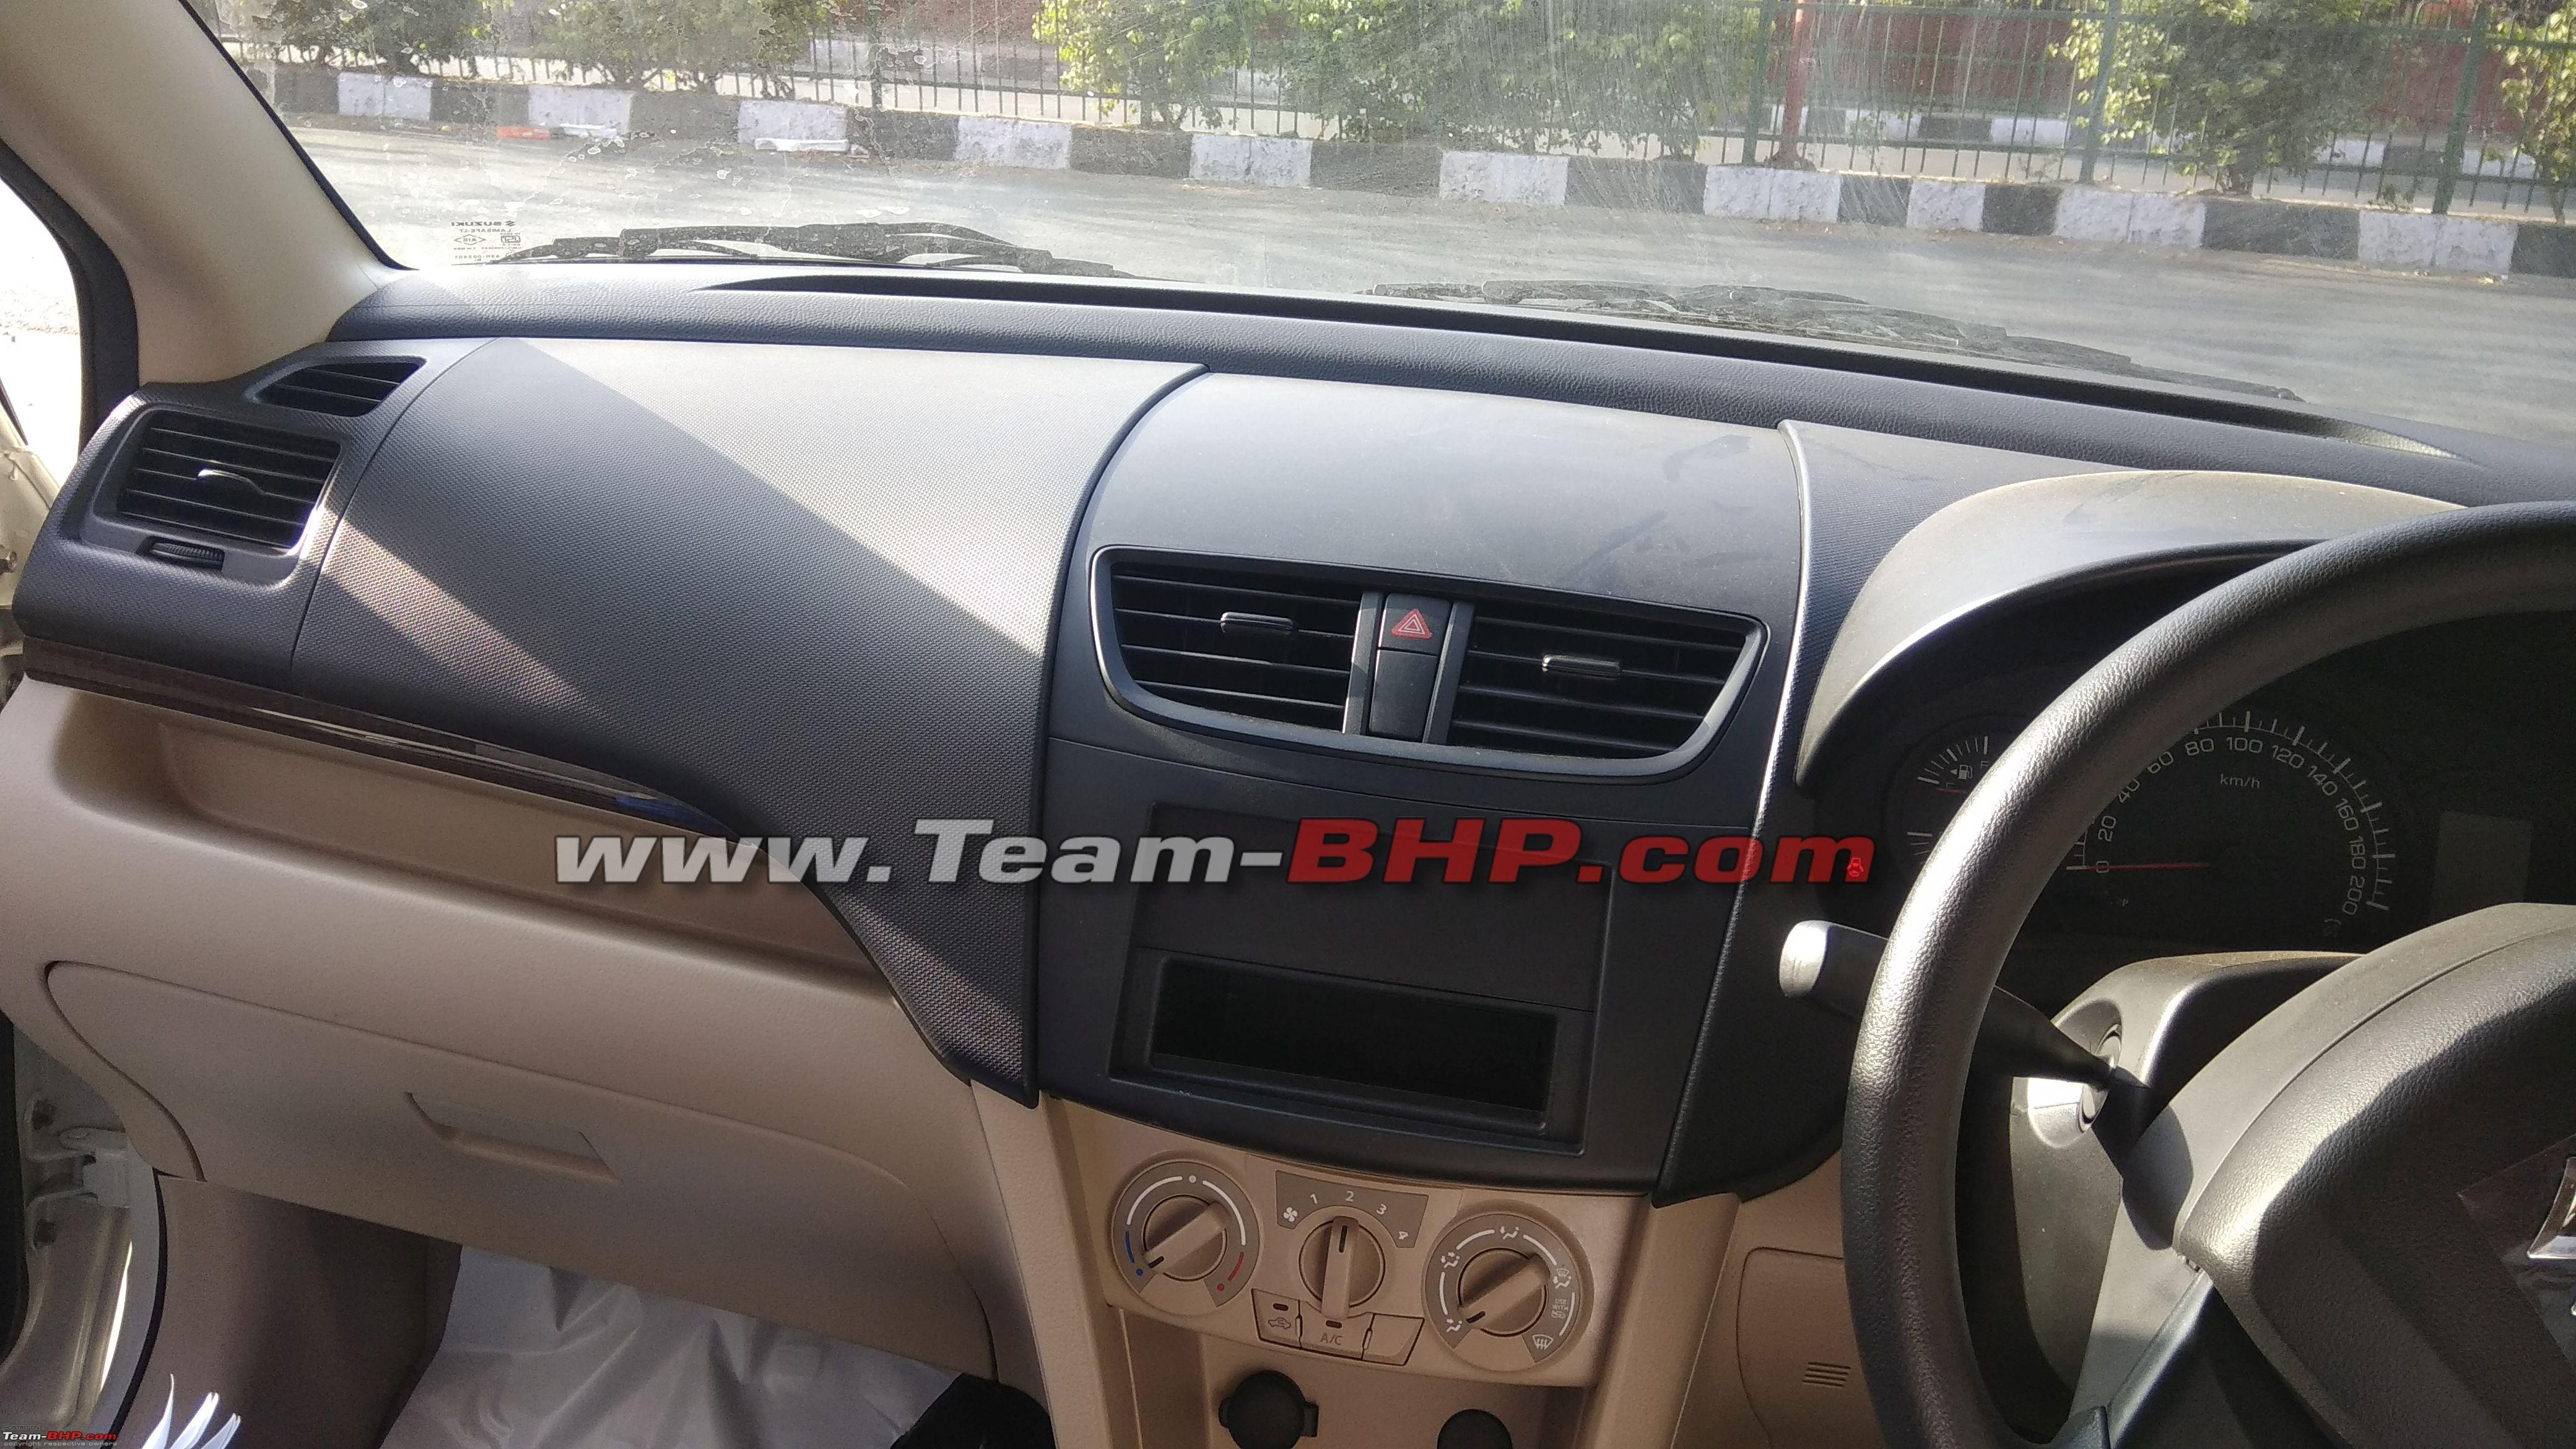 Maruti Dzire Tour S Cng Specifications Leaked Team Bhp